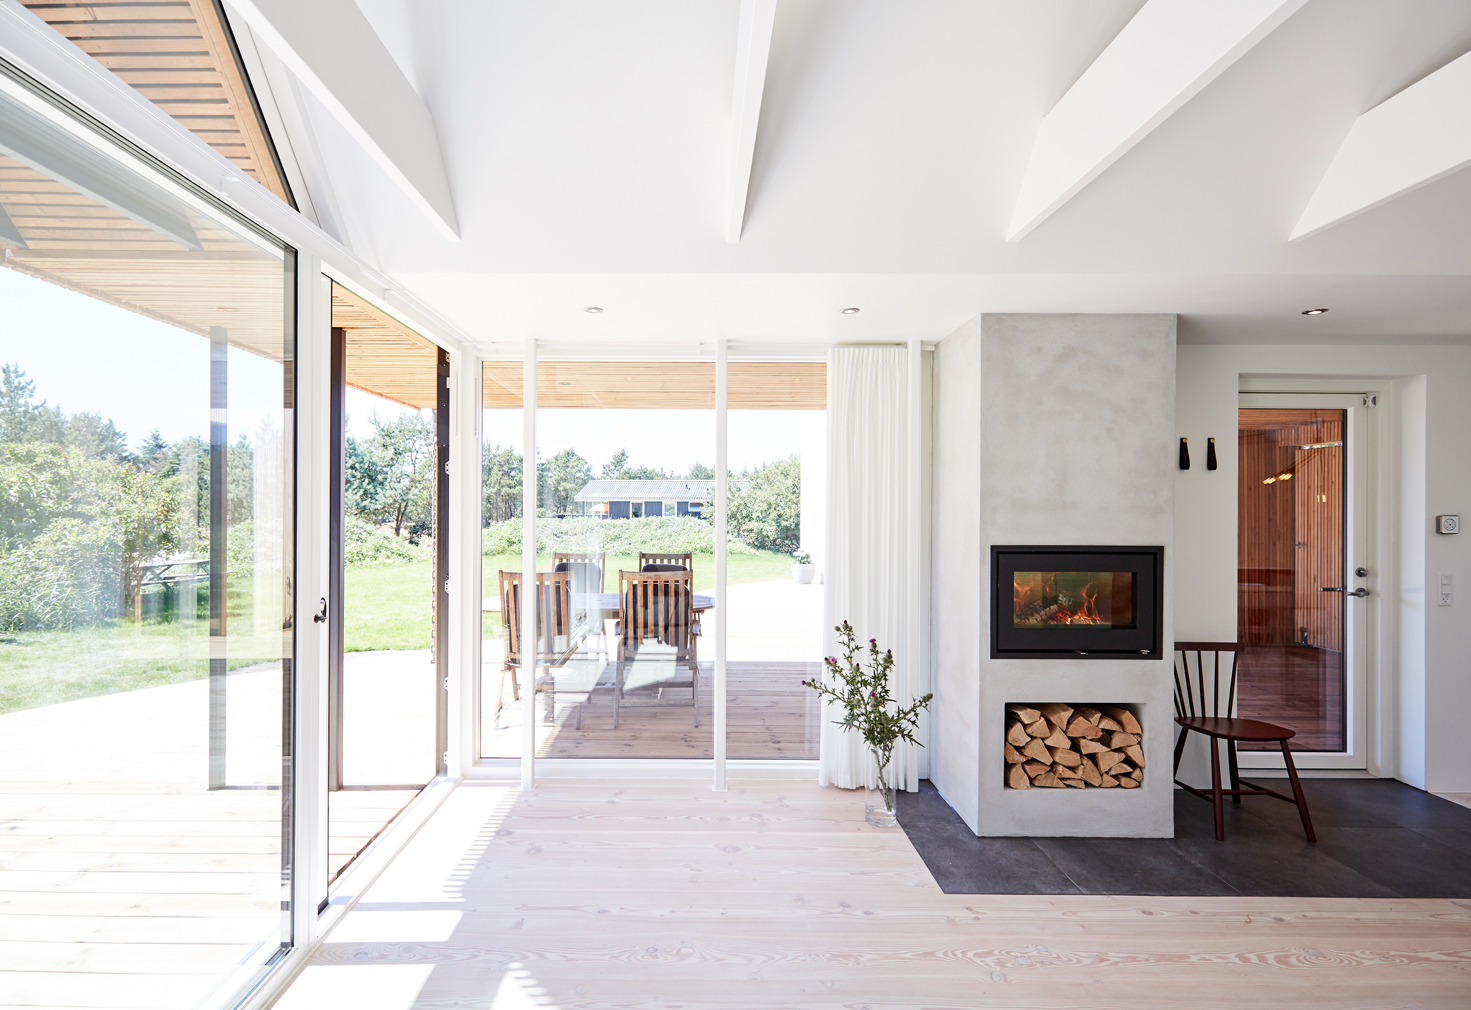 The Woodhouse holiday home in Denmark designed by Søren